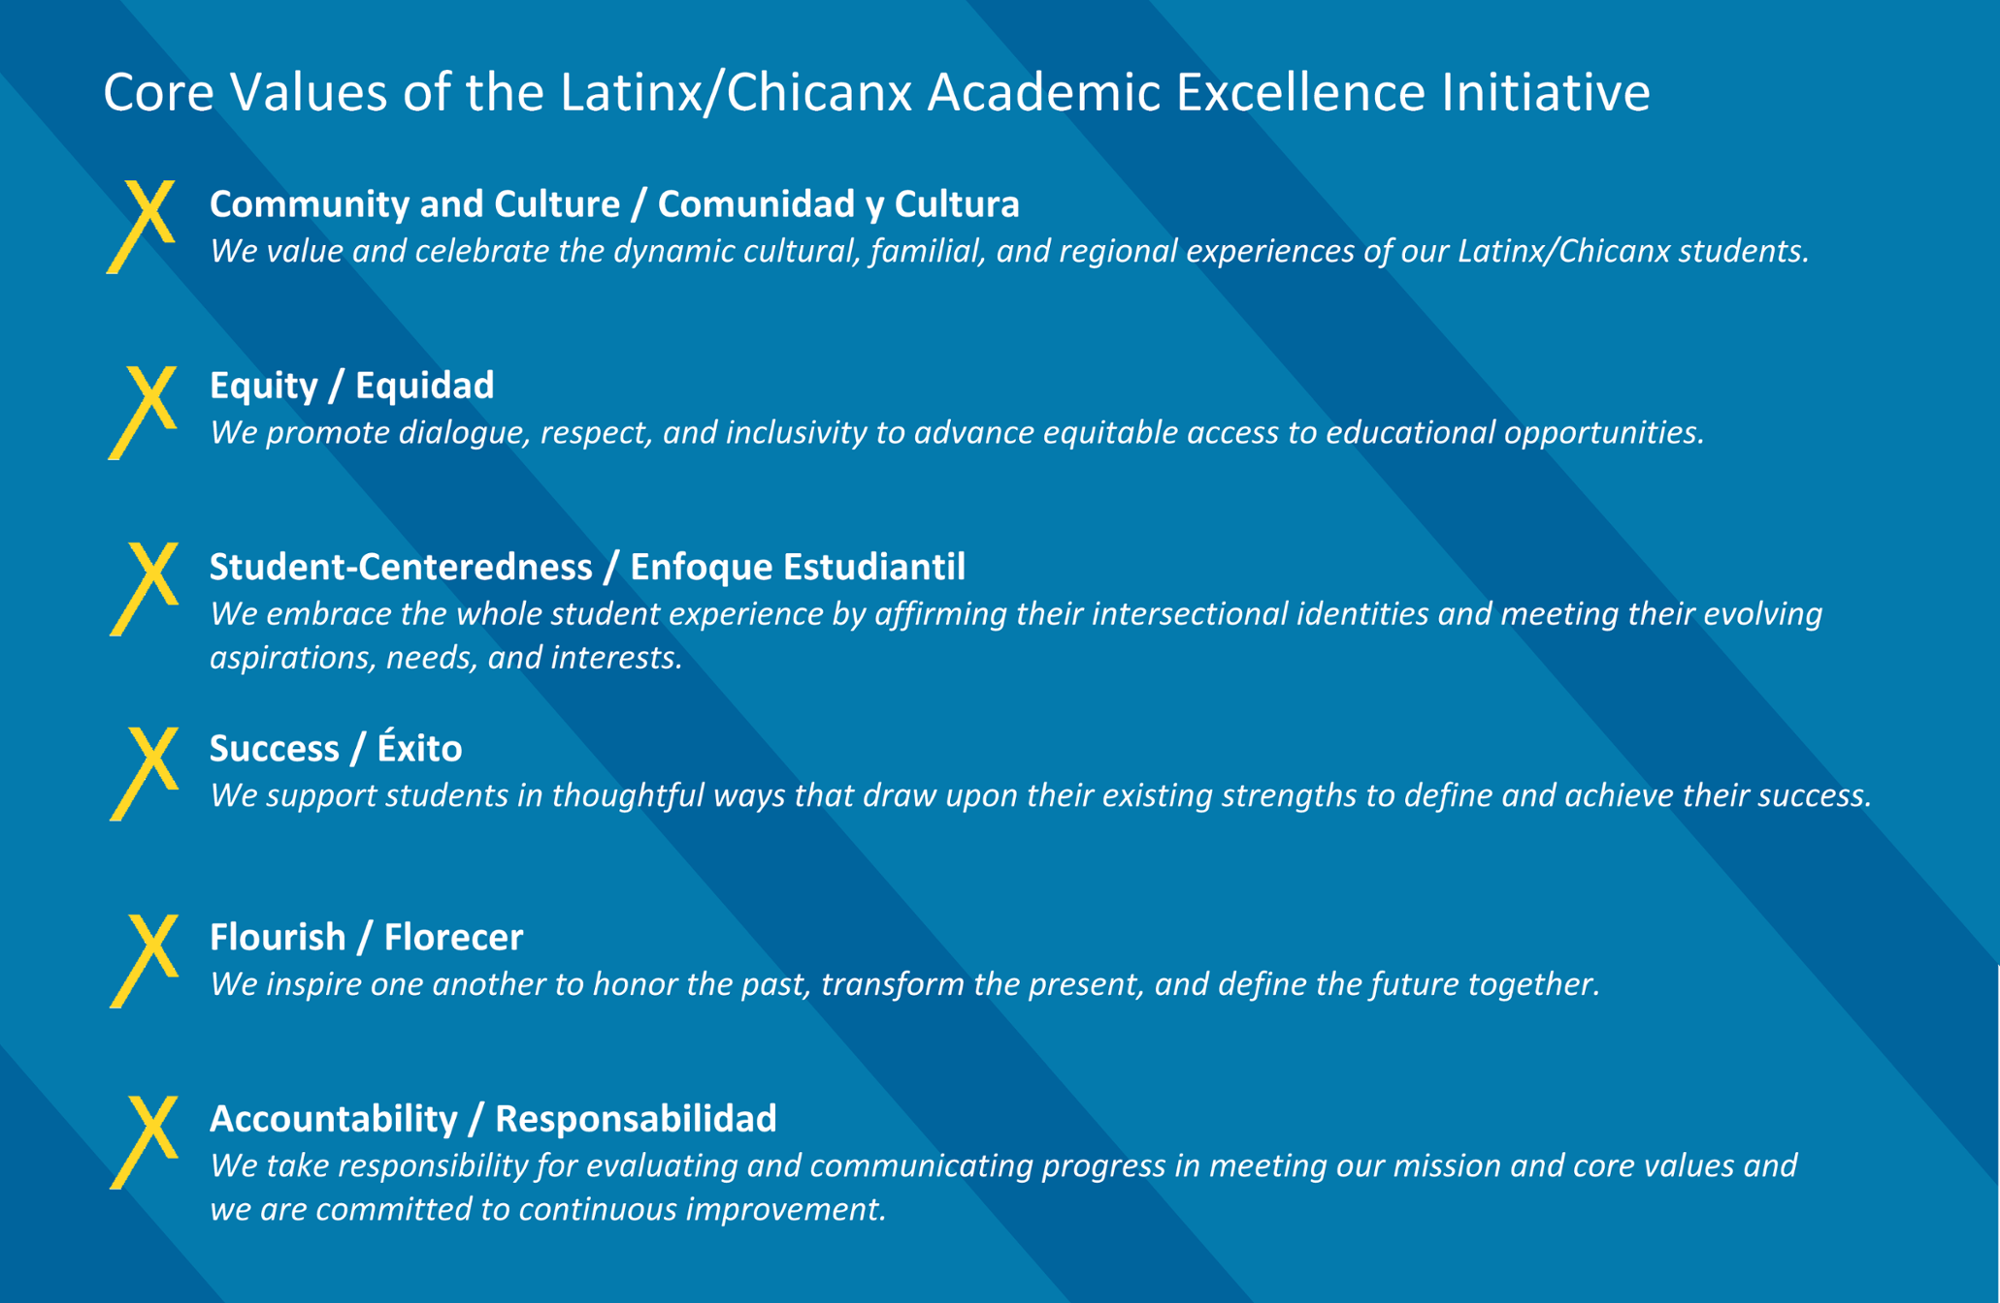 Core Values of the Latinx/Chicanx Academic Excellence Initiative Community and Culture / Comunidad y Cultura We value and celebrate the dynamic cultural, familial, and regional experiences of our Latinx/Chicanx students. Equity / Equidad We promote dialogue, respect, and inclusivity to advance equitable access to educational opportunities. Student-Centeredness / Enfoque Estudiantil We embrace the whole student experience by affirming their intersectional identities and meeting their evolving aspirations, needs, and interests. Success / Éxito We support students in thoughtful ways that draw upon their existing strengths to define and achieve their success. Flourish / Florecer We inspire one another to honor the past, transform the present, and define the future together. Accountability / Responsabilidad We take responsibility for evaluating and communicating progress in meeting our mission and core values and we are committed to continuous improvement.